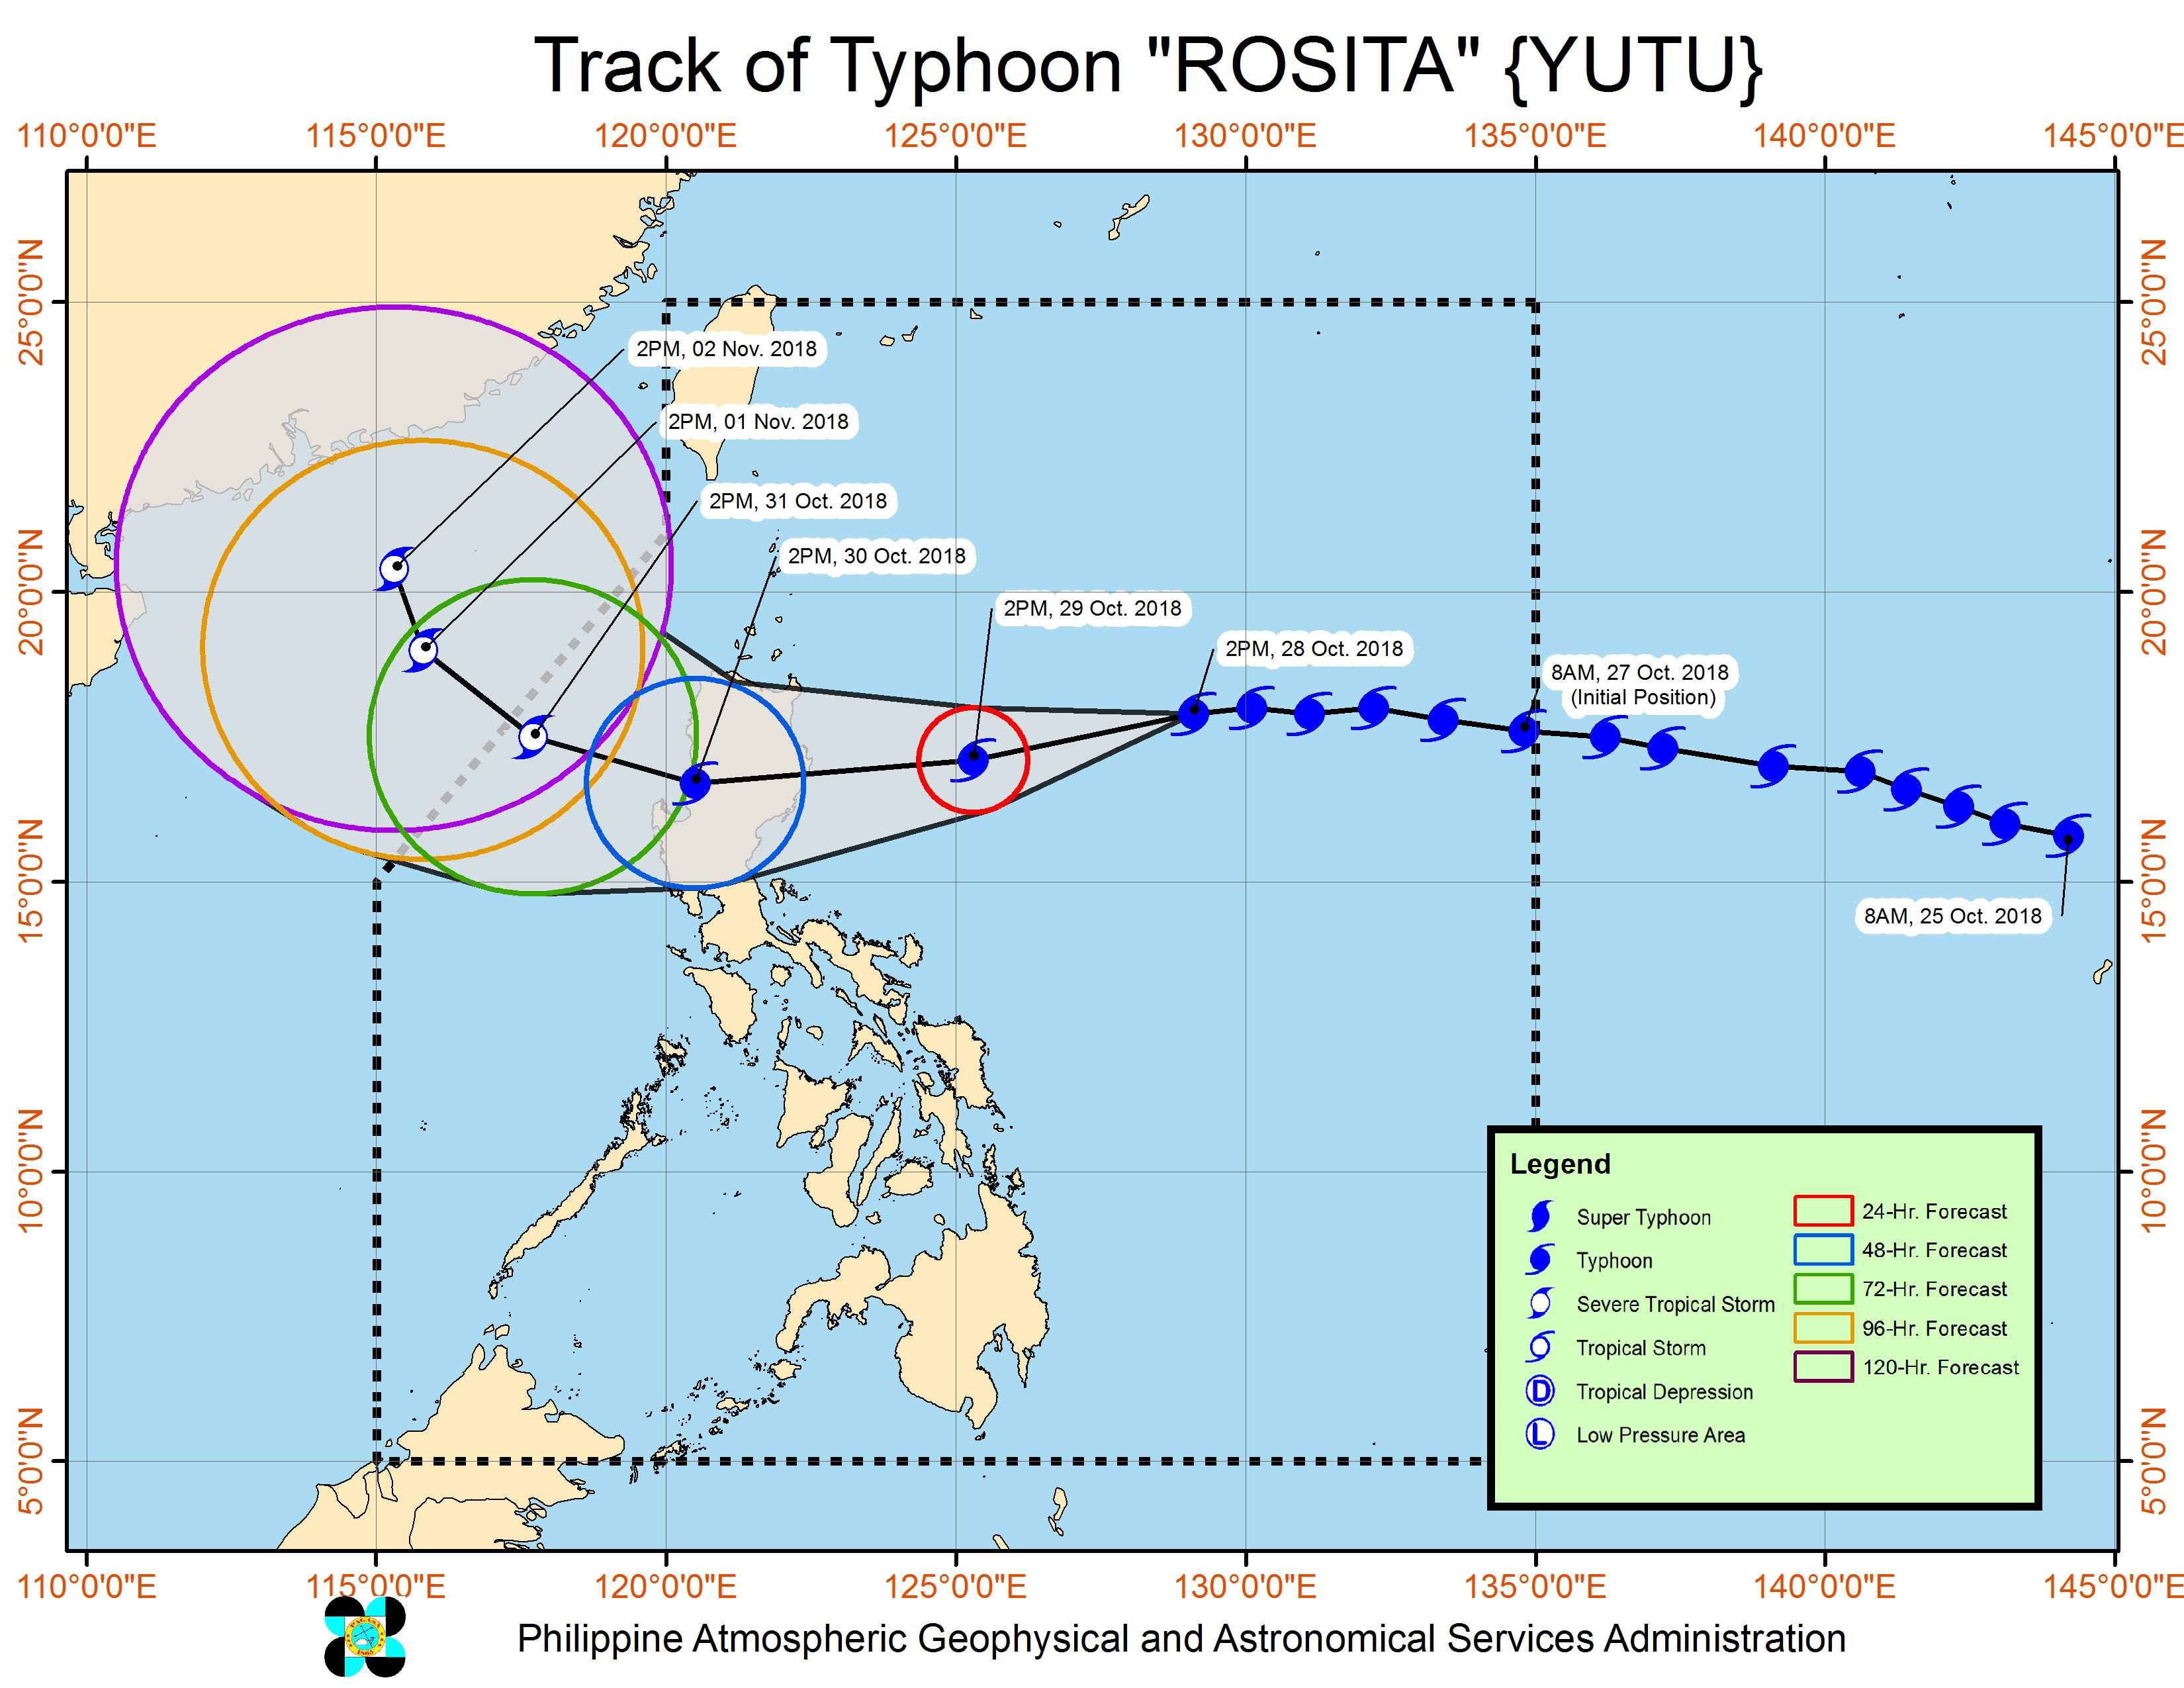 Forecast track of Typhoon Rosita (Yutu) as of October 28, 2018, 5 pm. Image from PAGASA